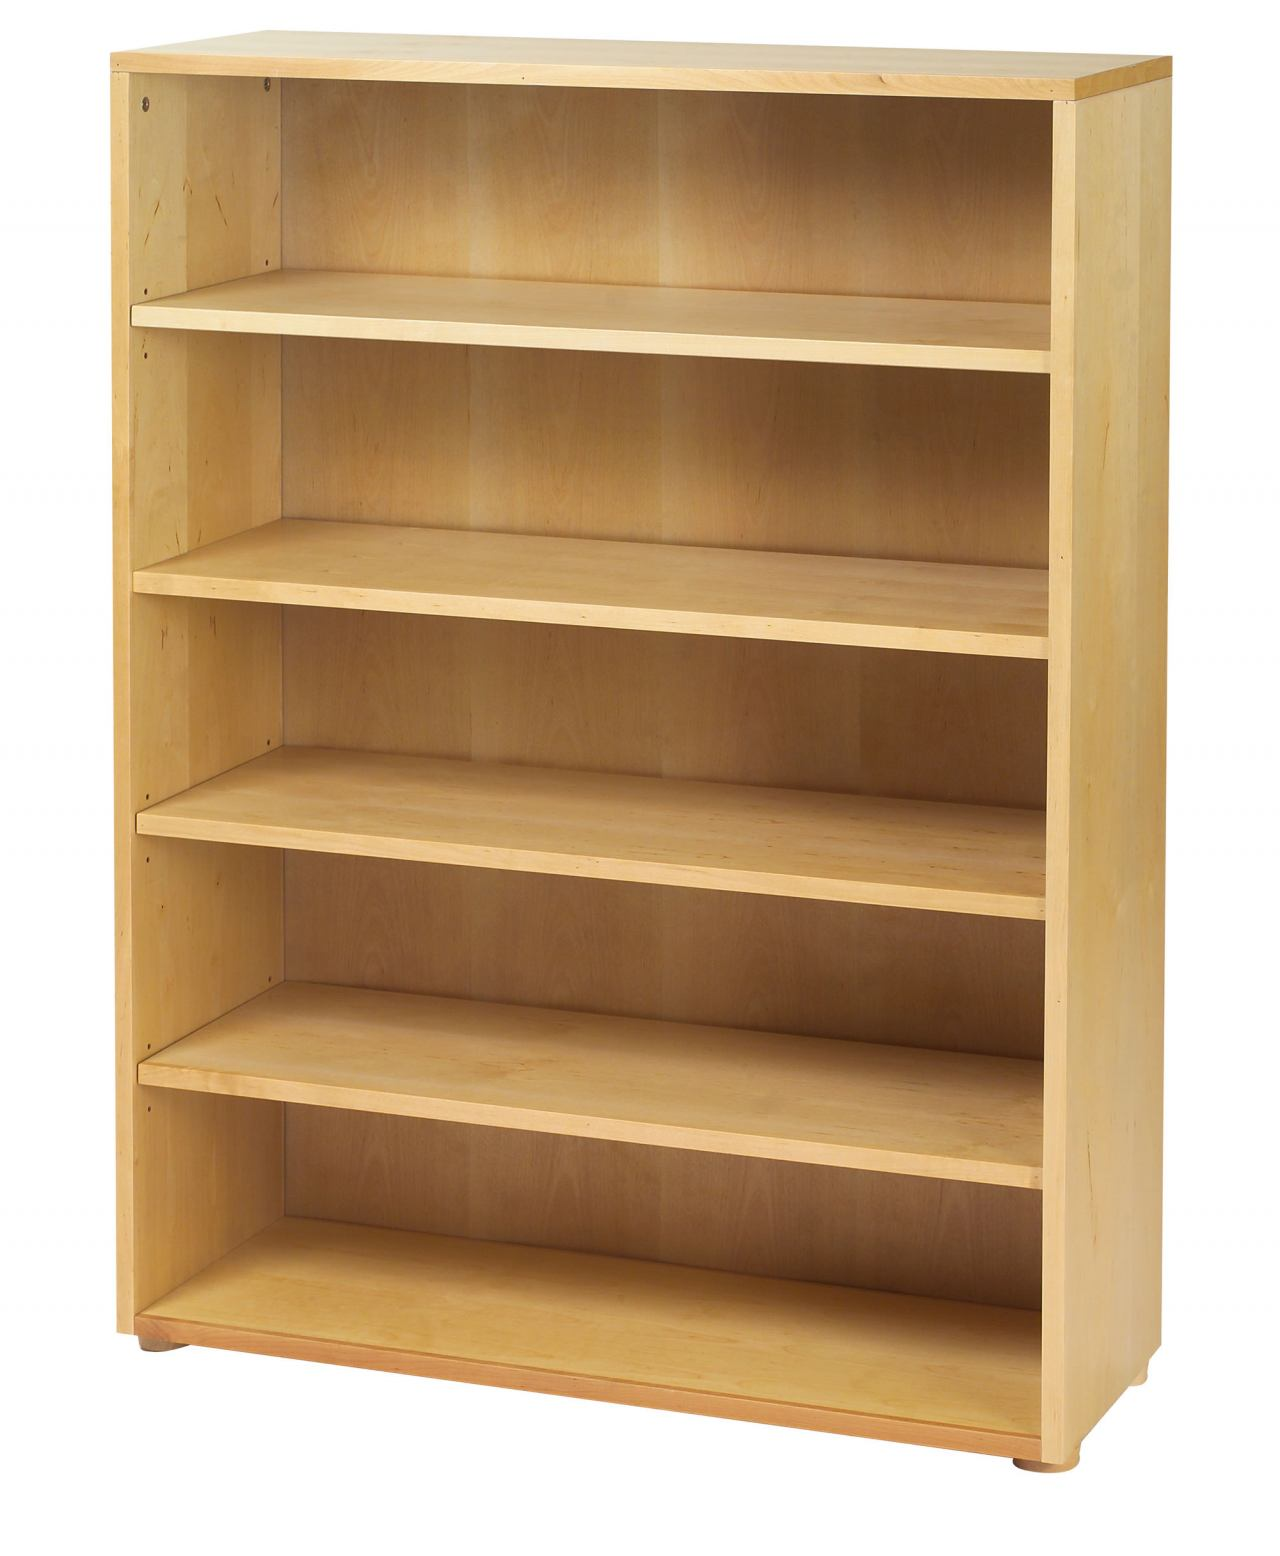 Maxtrix 5 Shelf Bookcase without Crown and Base in Natural 4750-001